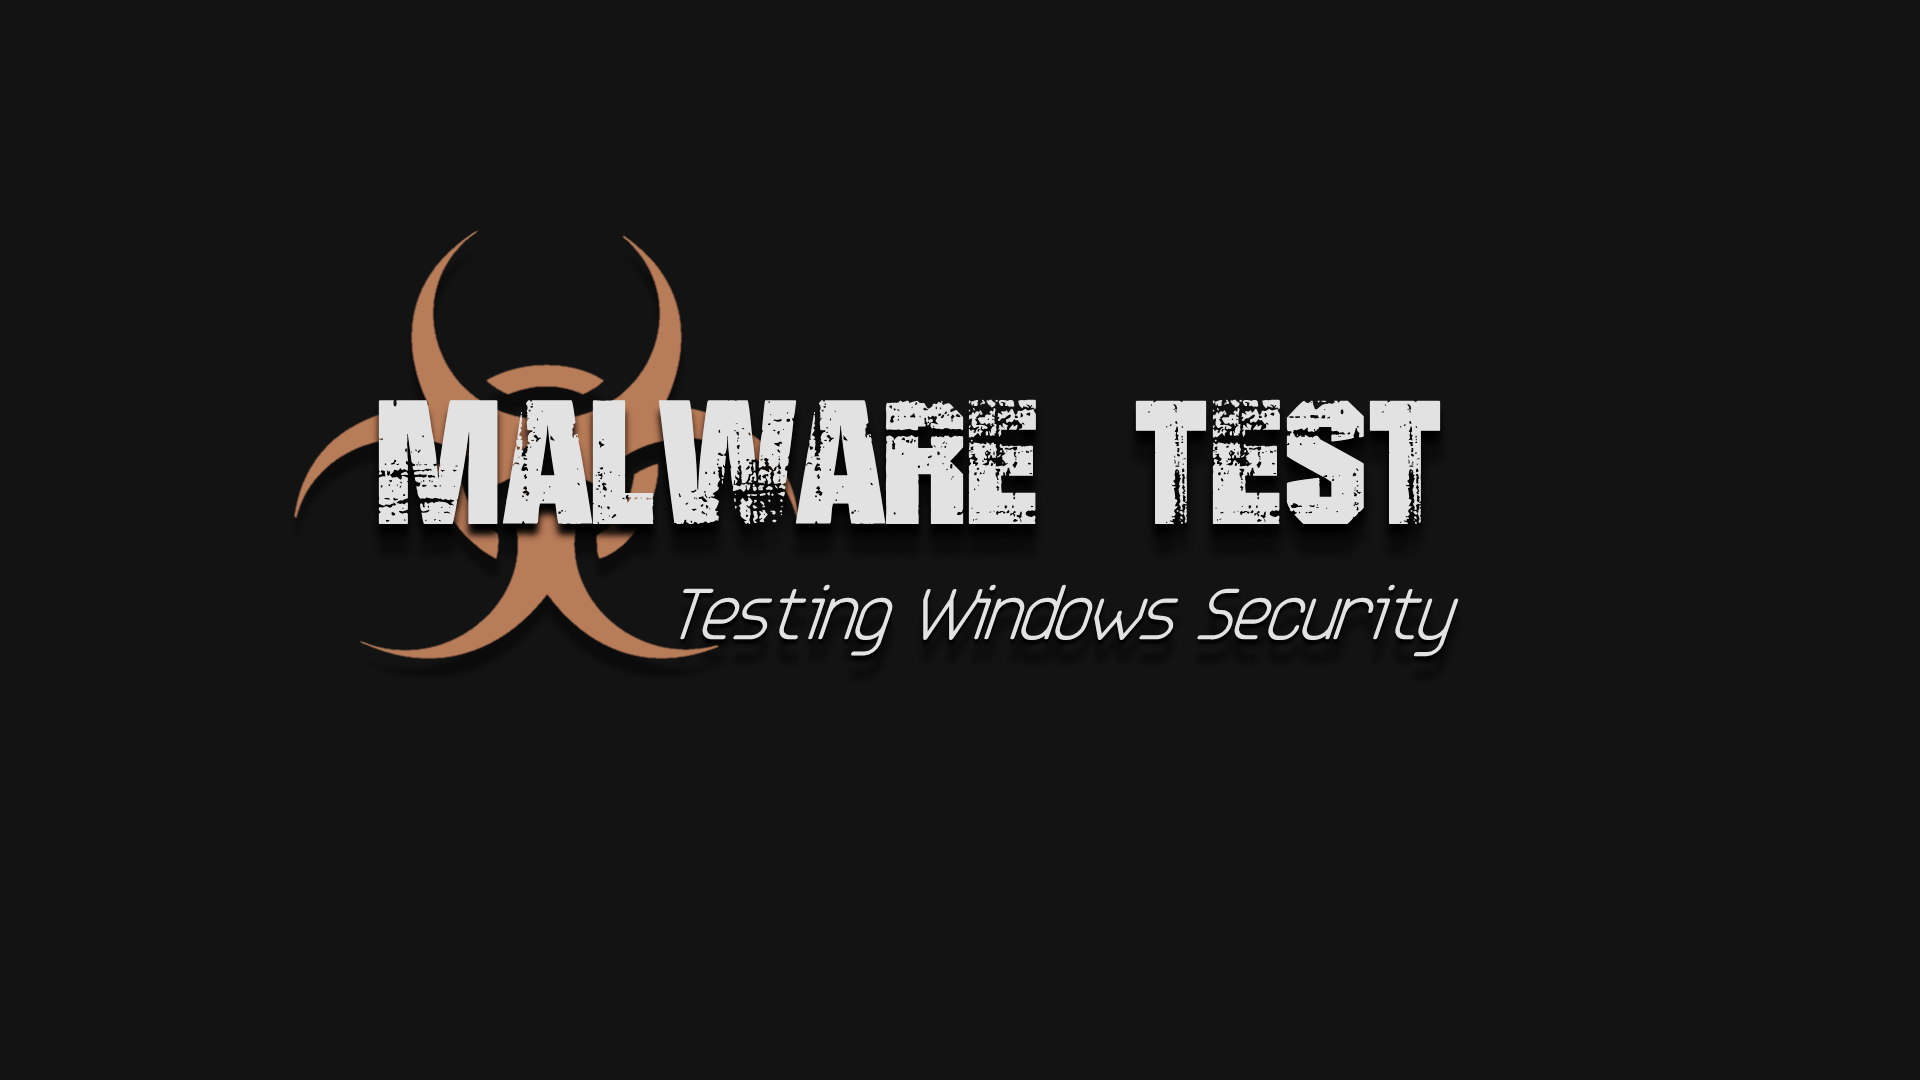 malware test wallpaper